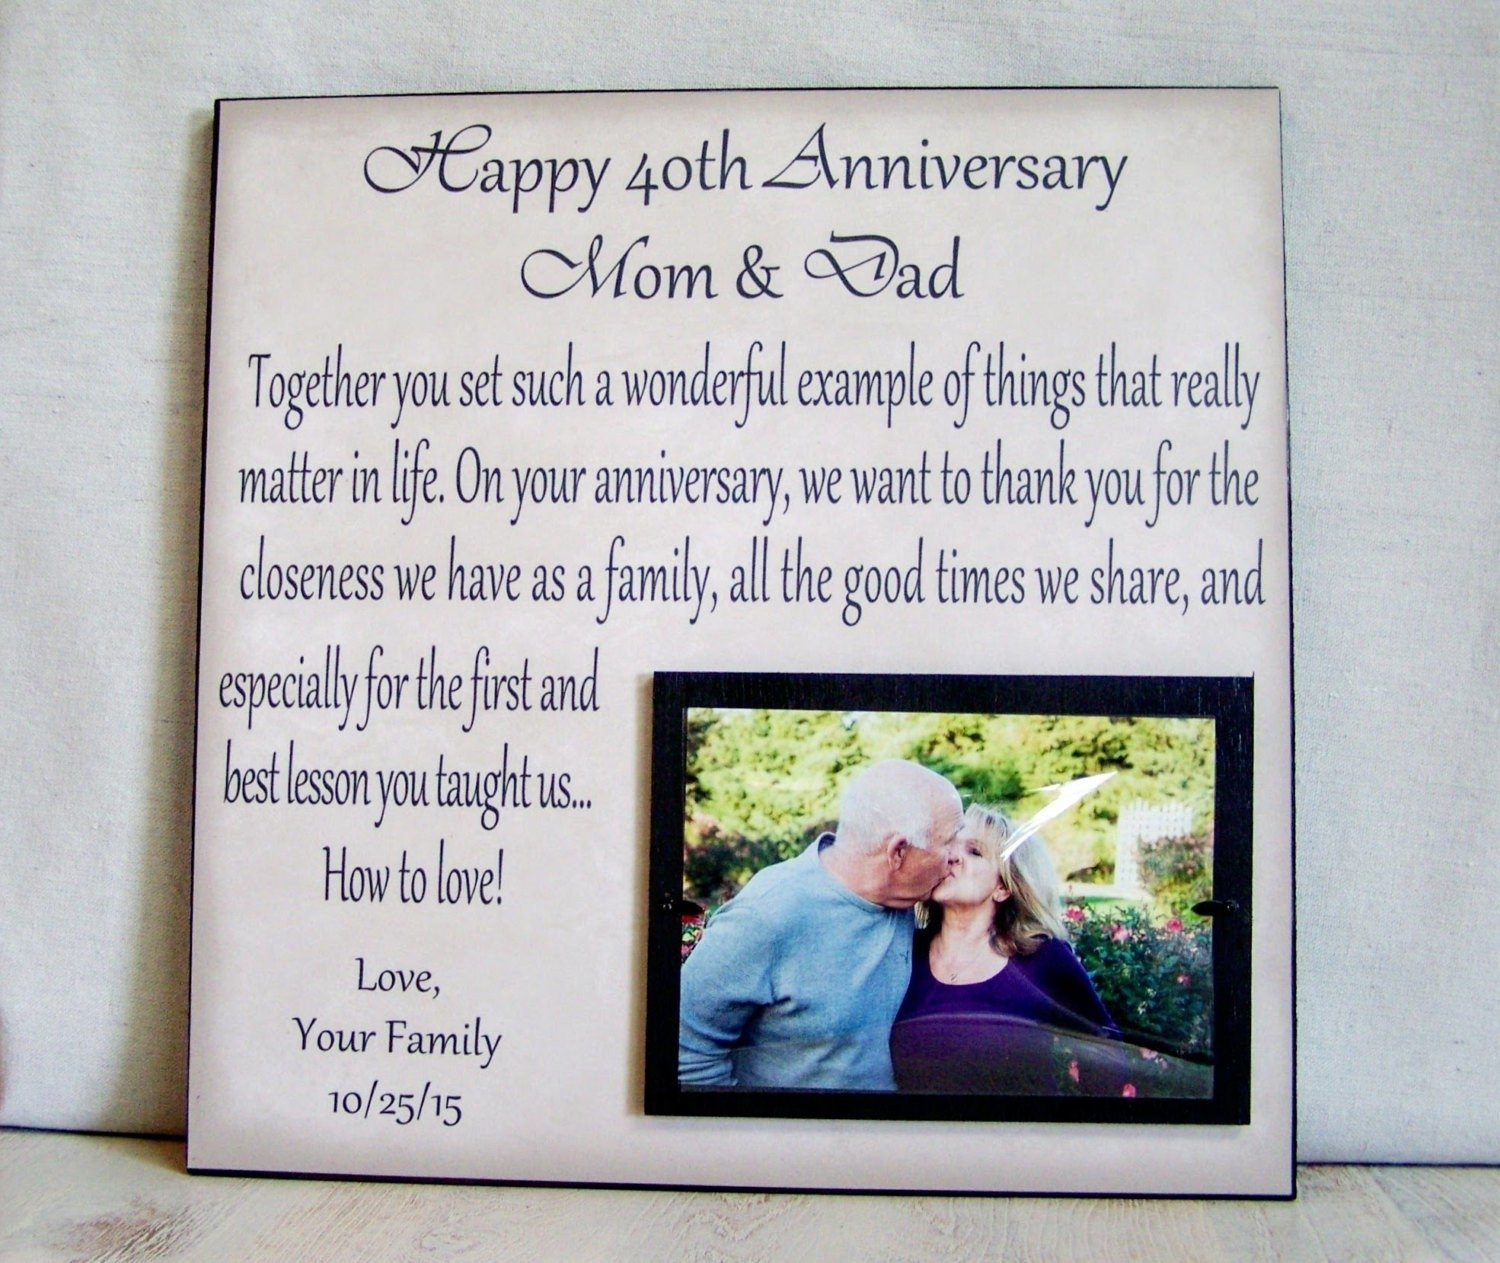 10 Spectacular 30Th Anniversary Ideas For Parents 30 wedding anniversary gifts for parents luxury anniversary picture 2021